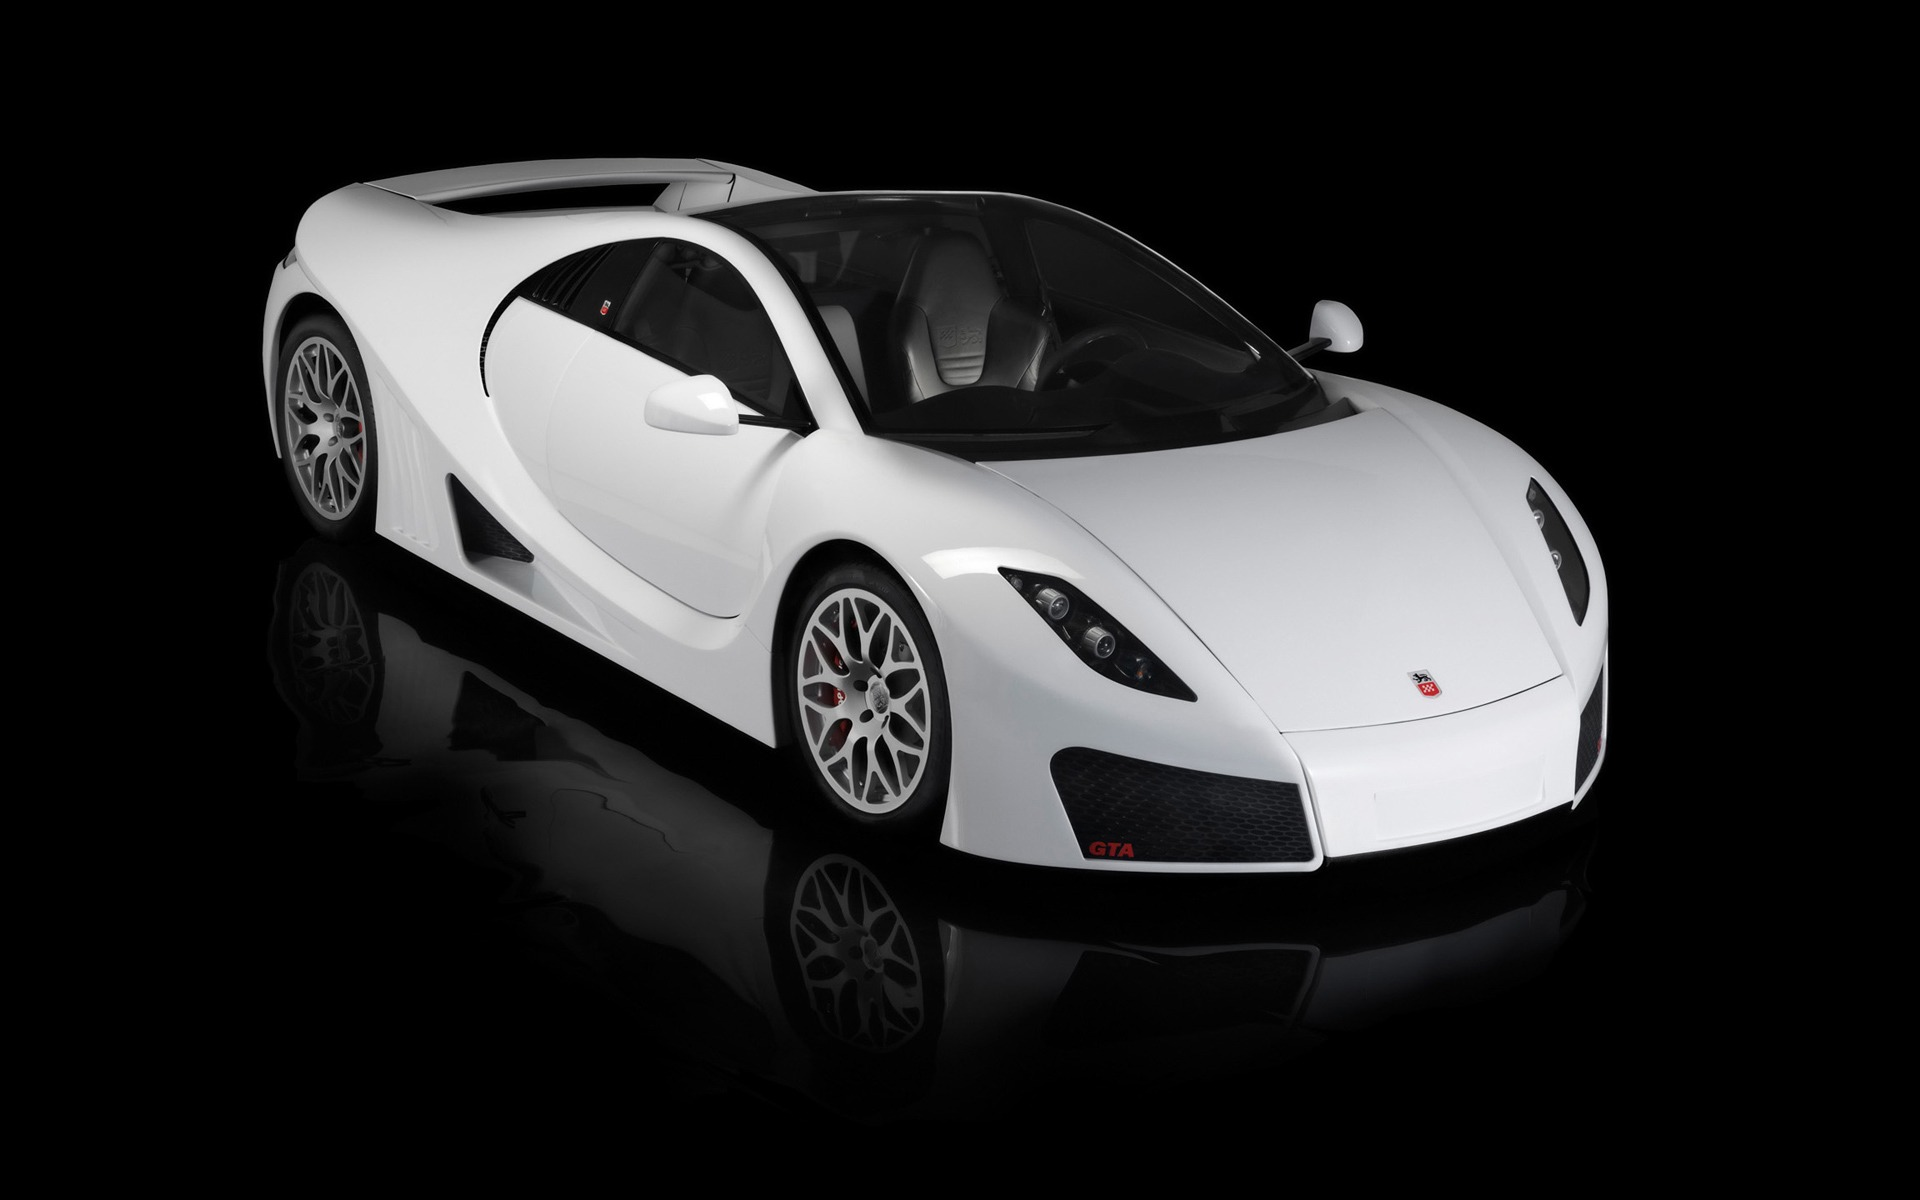 Sport car wallpaper wallpapers for free download about